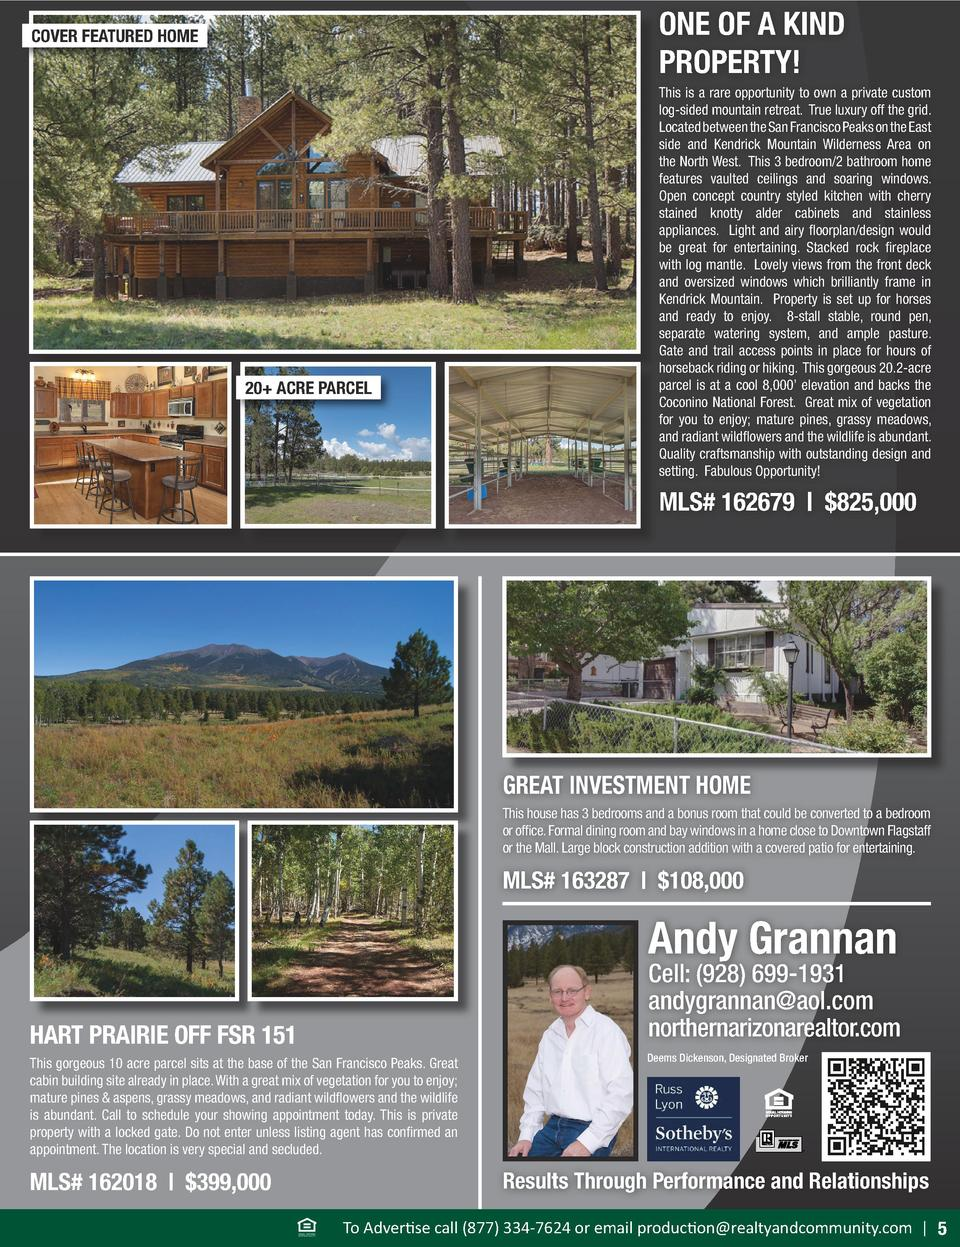 ONE OF A KIND PROPERTY   COVER FEATURED HOME  20  ACRE PARCEL  This is a rare opportunity to own a private custom log-side...